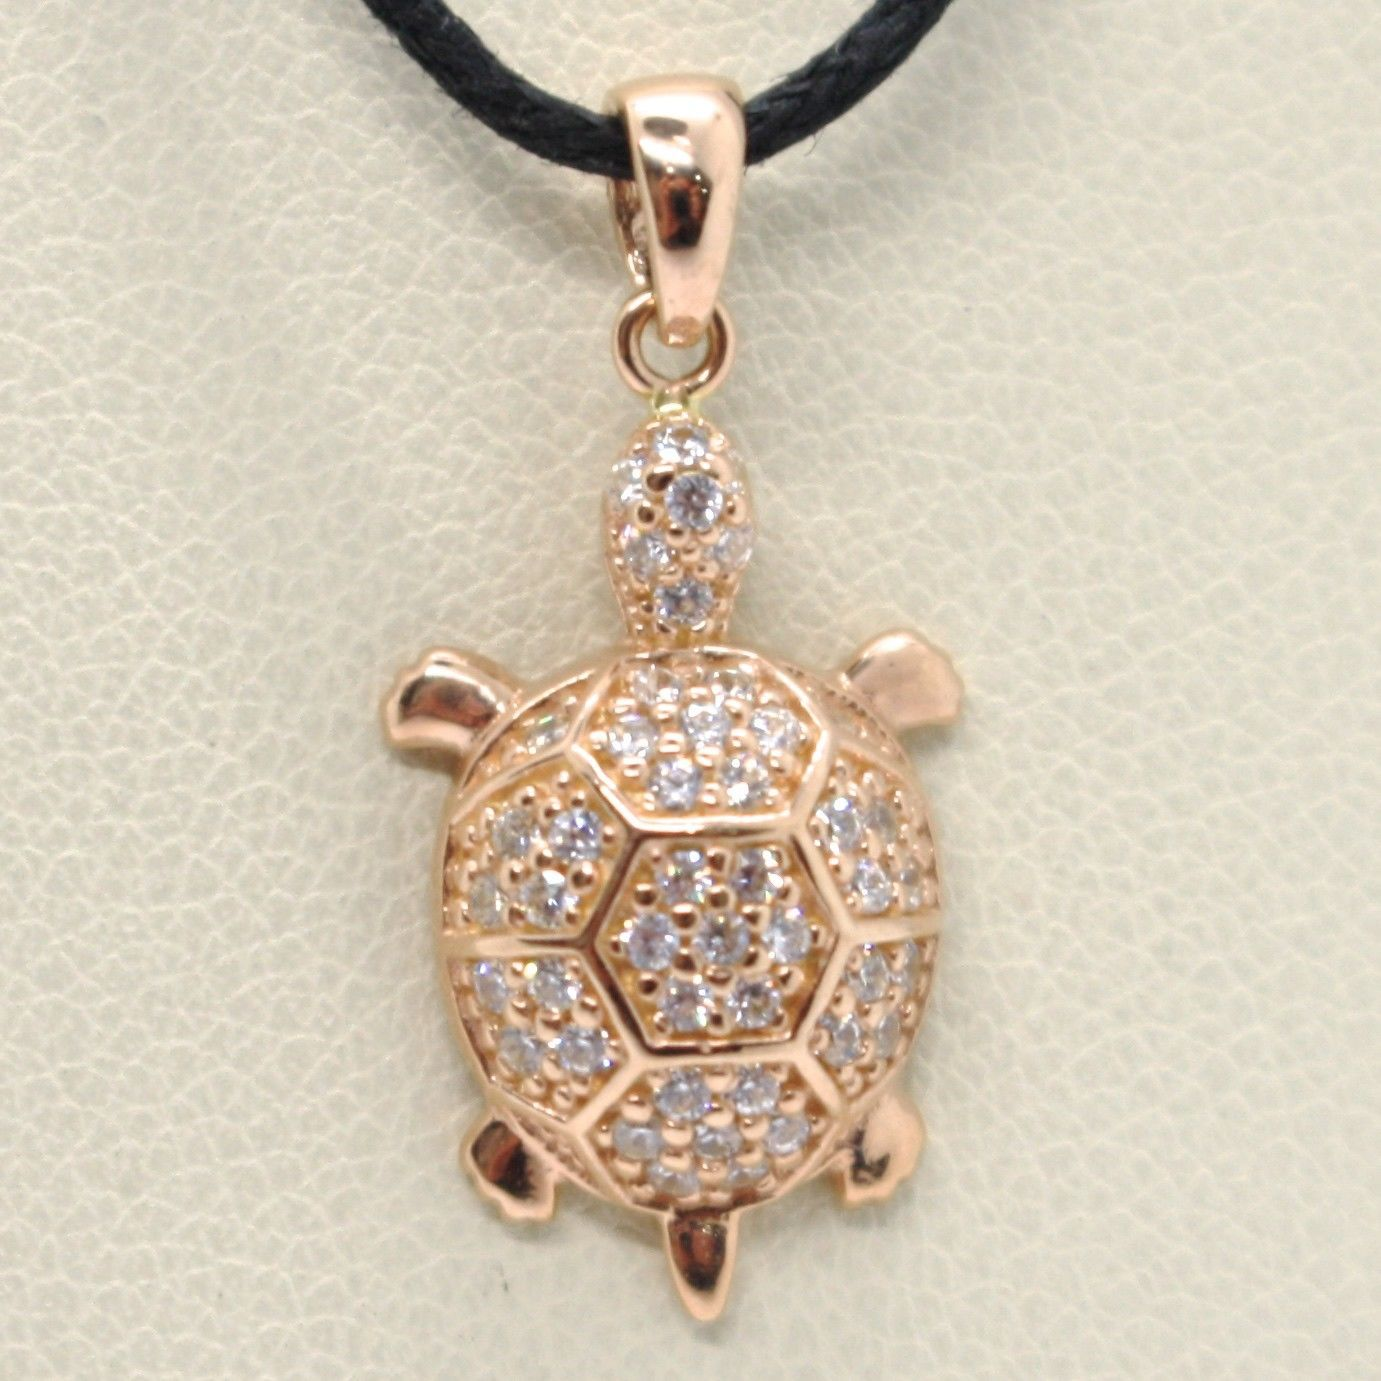 18K ROSE GOLD TURTLE ZIRCONIA PENDANT CHARM, 23 mm 0.9 inches, MADE IN ITALY